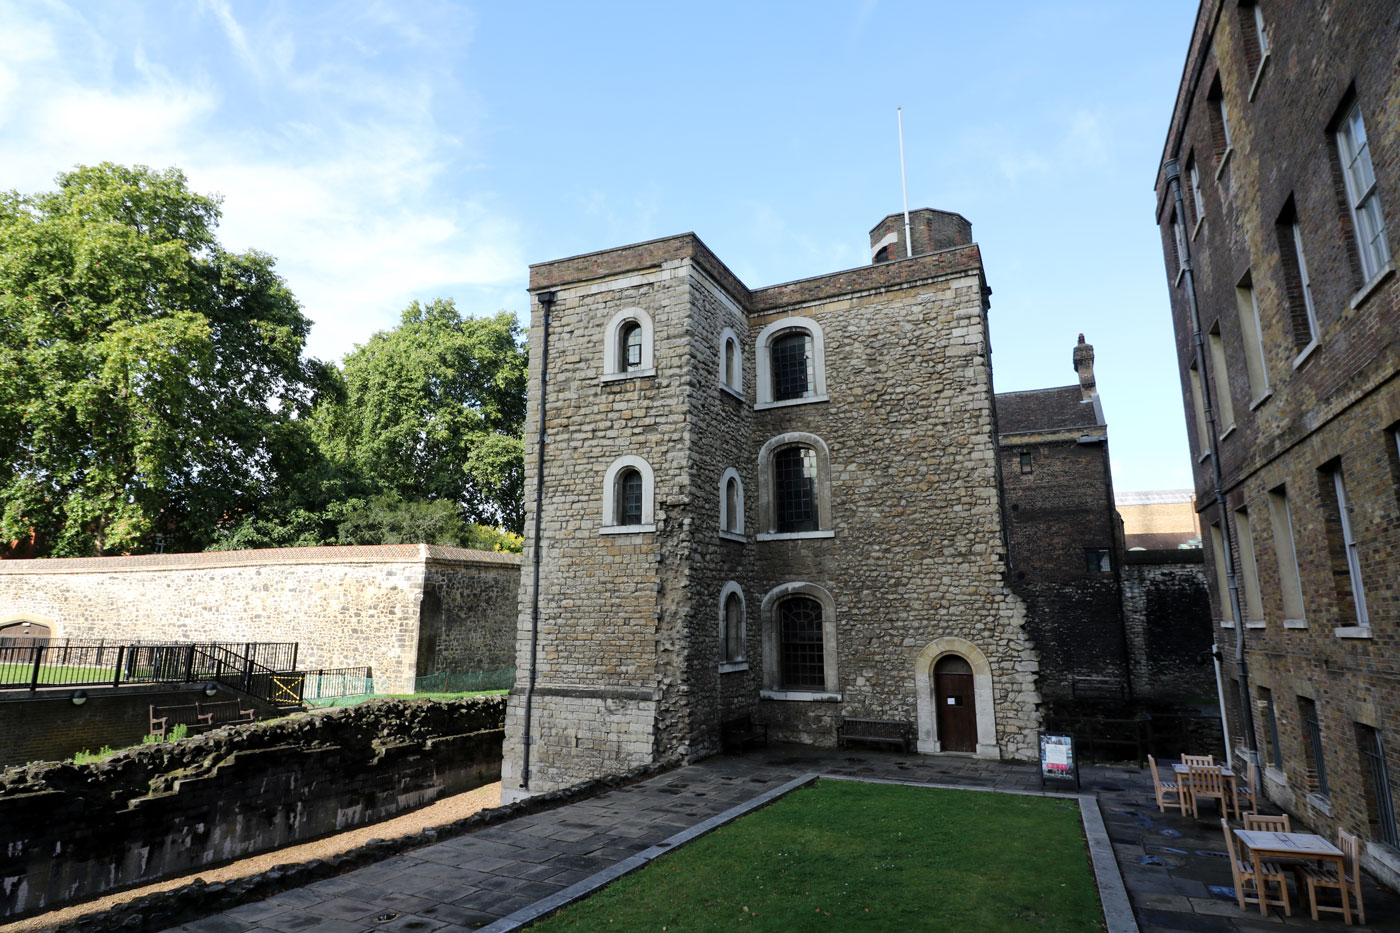 The Jewel Tower, City of Westminster